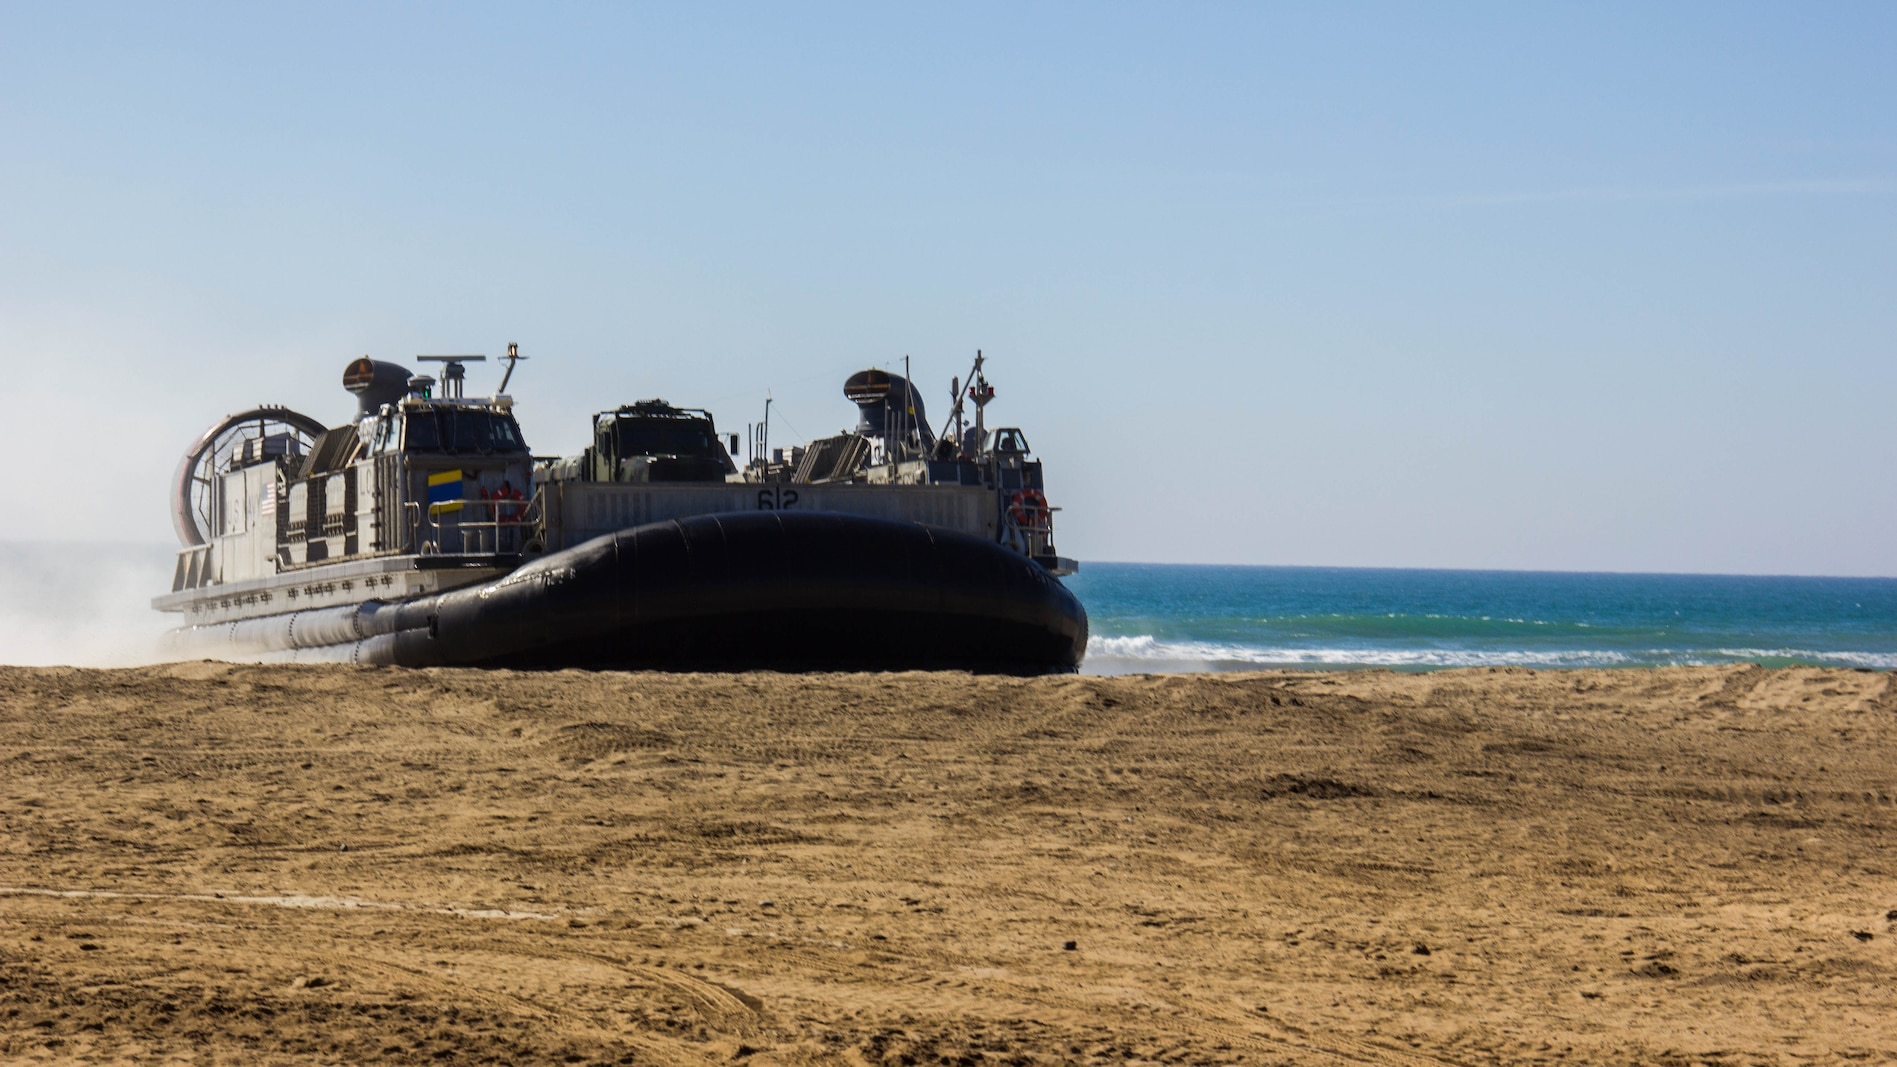 A Landing Craft, Air Cushions assigned to Assault Craft Unit 5 while makes a beach landing while performing a ship-to-shore drill during exercise Pacific Horizon 2015 aboard Marine Corps Base Camp Pendleton, Calif., Oct 23. PH 15 is a scenario driven, simulation supported crisis response exercise designed to improve 1st Marine Expeditionary Brigade's and Expeditionary Strike Group 3's interoperability and strengthen Navy-Marine Corps relations by conducting an in-stream Maritime Prepositioning Force offload of equipment by providing host country civil-military security assistance, and by conducting infrastructure restoration support from Oct. 20-28.